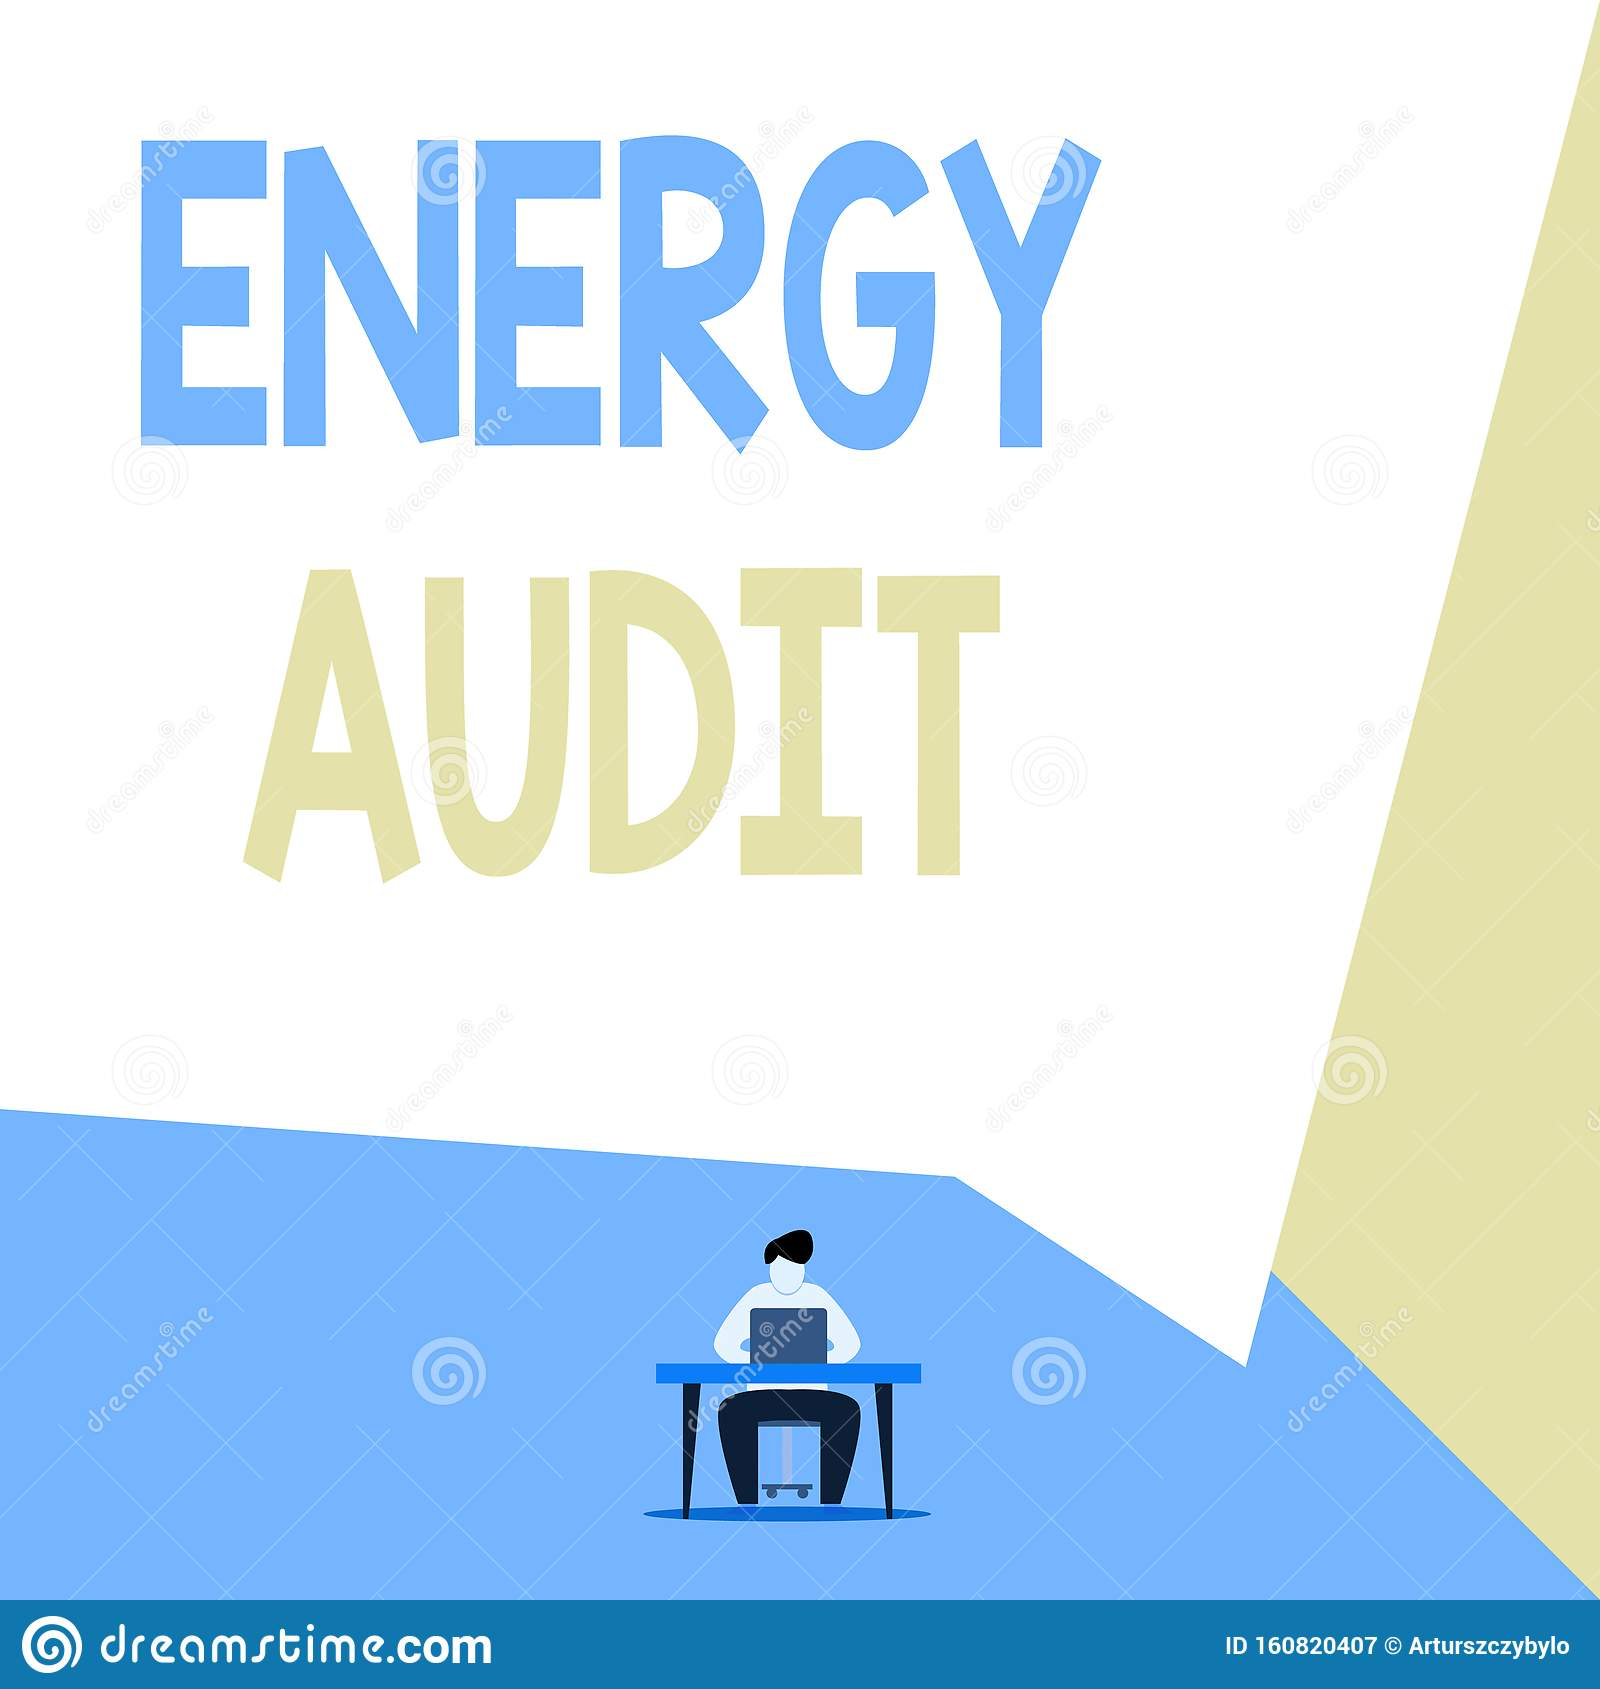 Handwriting Text Energy Audit Concept Meaning Assessment Of The Energy Needs And Efficiency Of A Building View Young Stock Illustration Illustration Of Budget Environment 160820407 Assessment has two meanings (an amount that a person is officially required to pay and the act of making a judgment about something) so distinct that one might rightfully wonder if they come from. dreamstime com